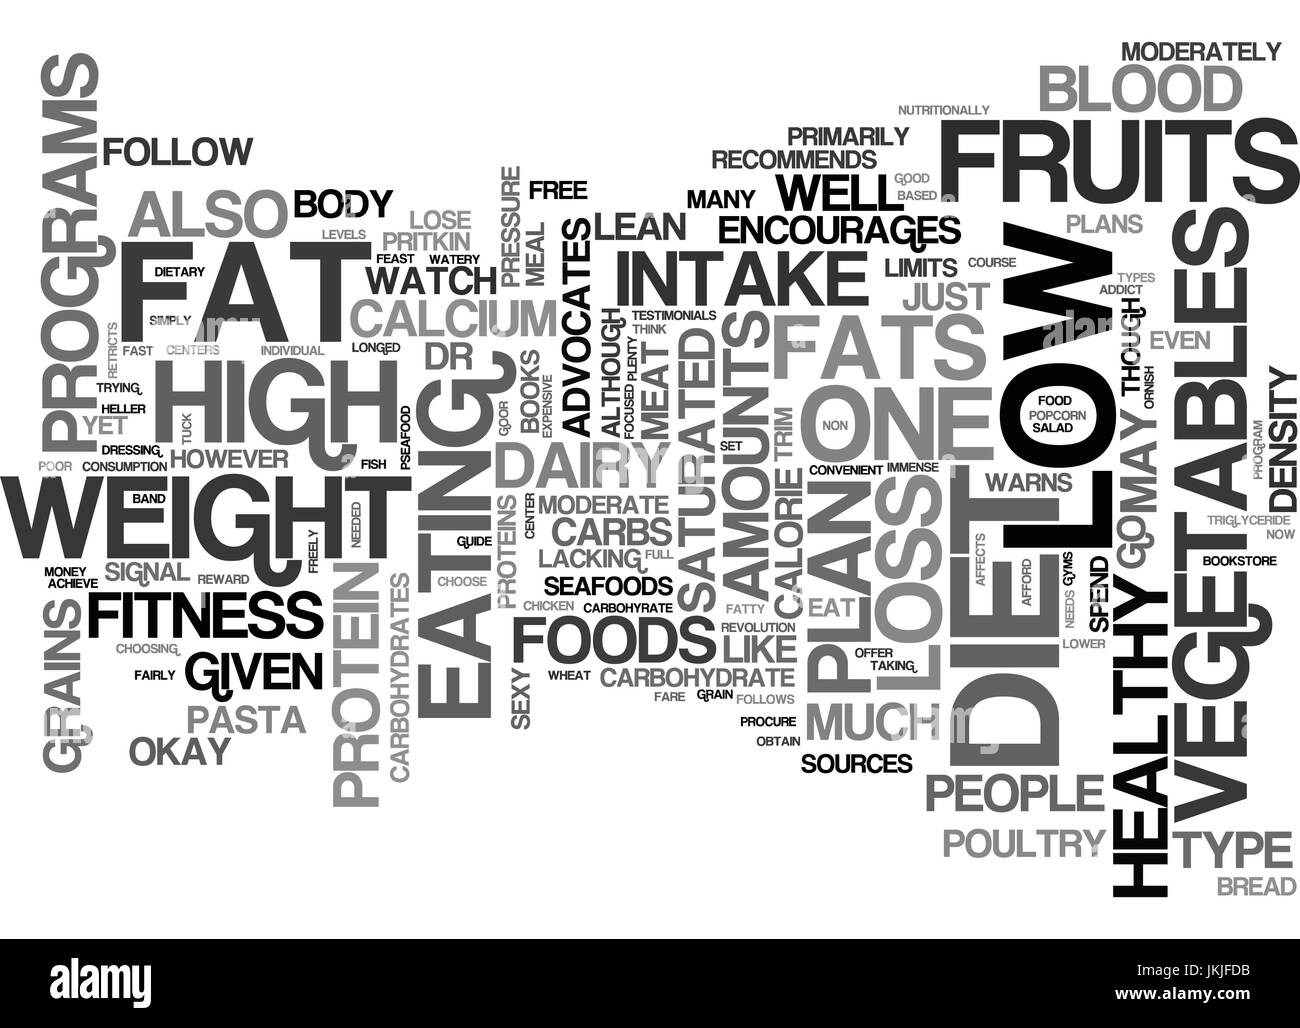 Free Weight Loss Plan Text Background Word Cloud Concept Stock Vector Image Art Alamy